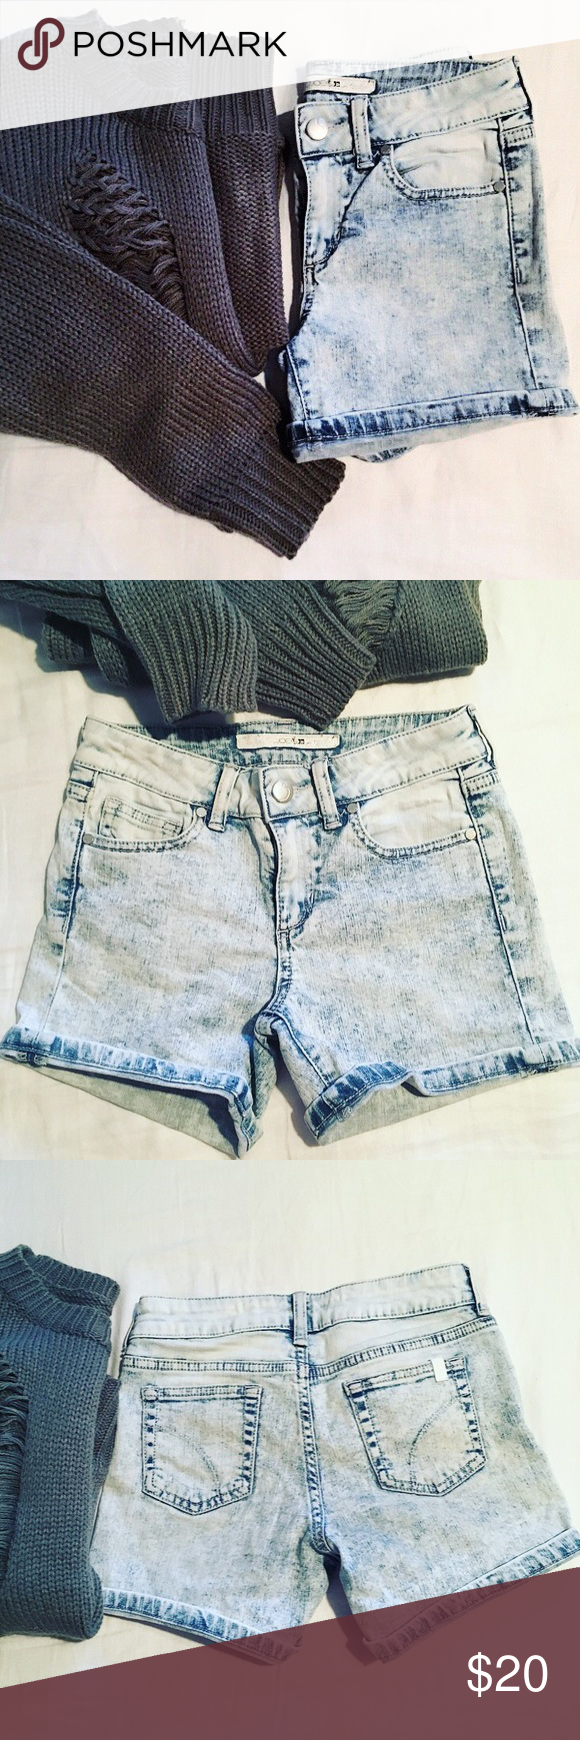 Joe's jean shorts for girls ✔️ Joe's Jean shorts for girls✔️size 8, cuffed legs, slight high rise in the waist, 11 inch waist, 12 inch L from backside (waist) to bottom leg, 10inch L from front waist (button) to bottom leg. 98% cotton, 2% spandex. Pre owned  in excellent condition!👍🏼 offers welcome💛no trades thank you Joe's Jeans Bottoms Shorts